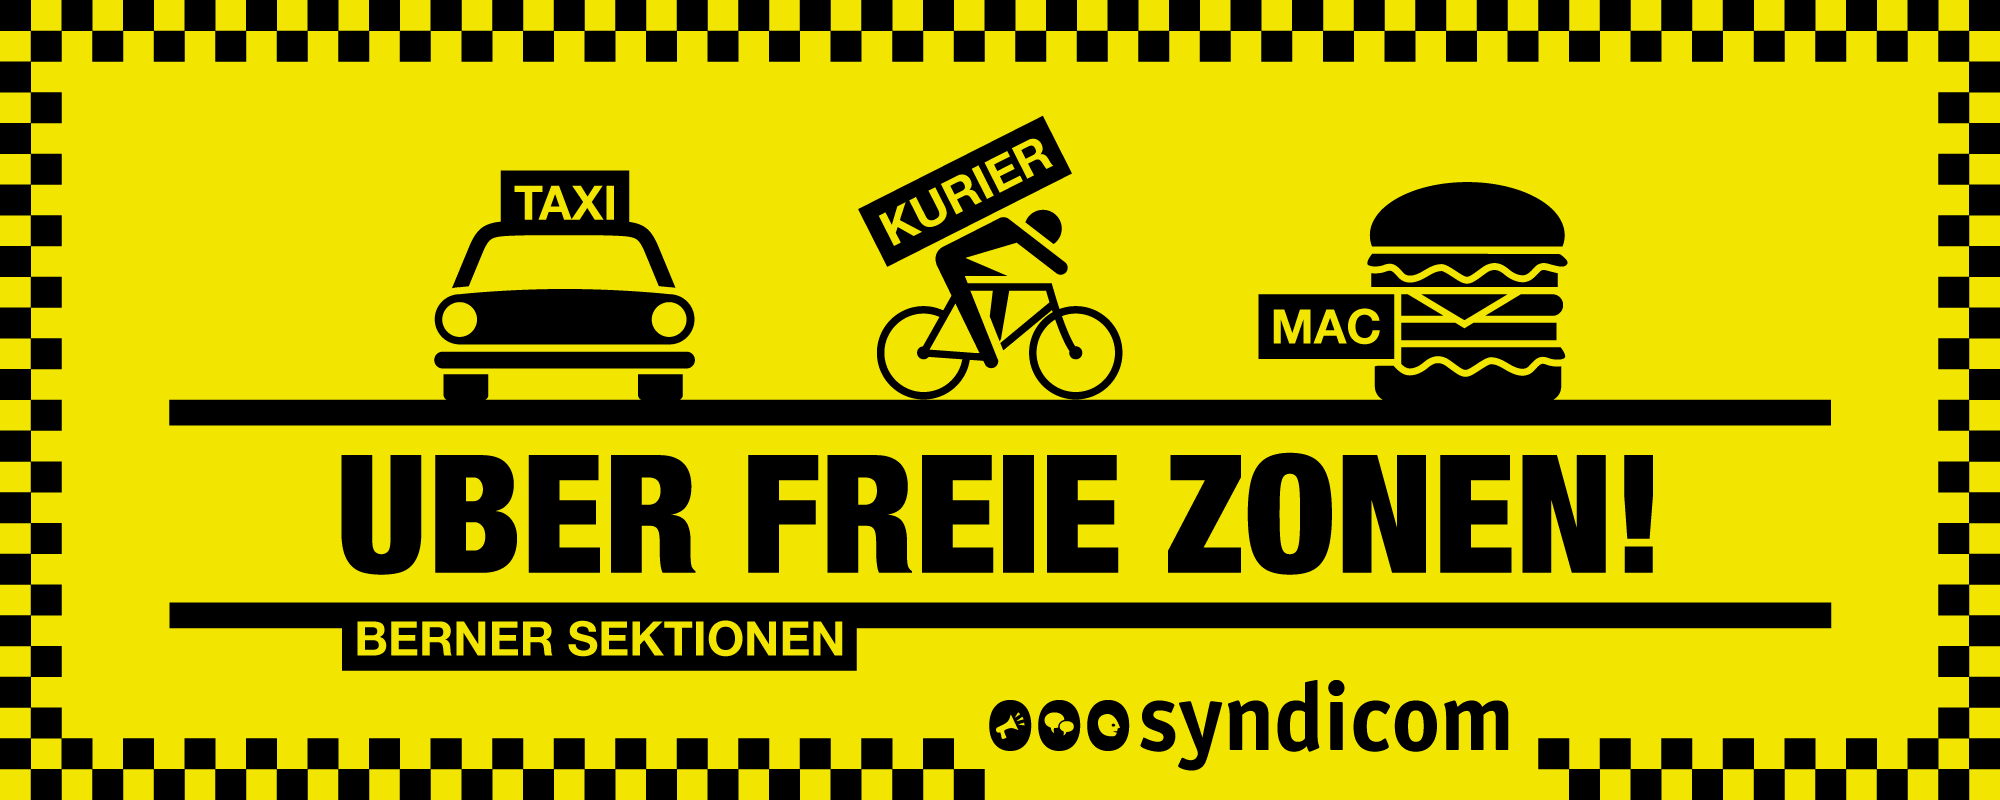 uberfreie_zonen_transparent